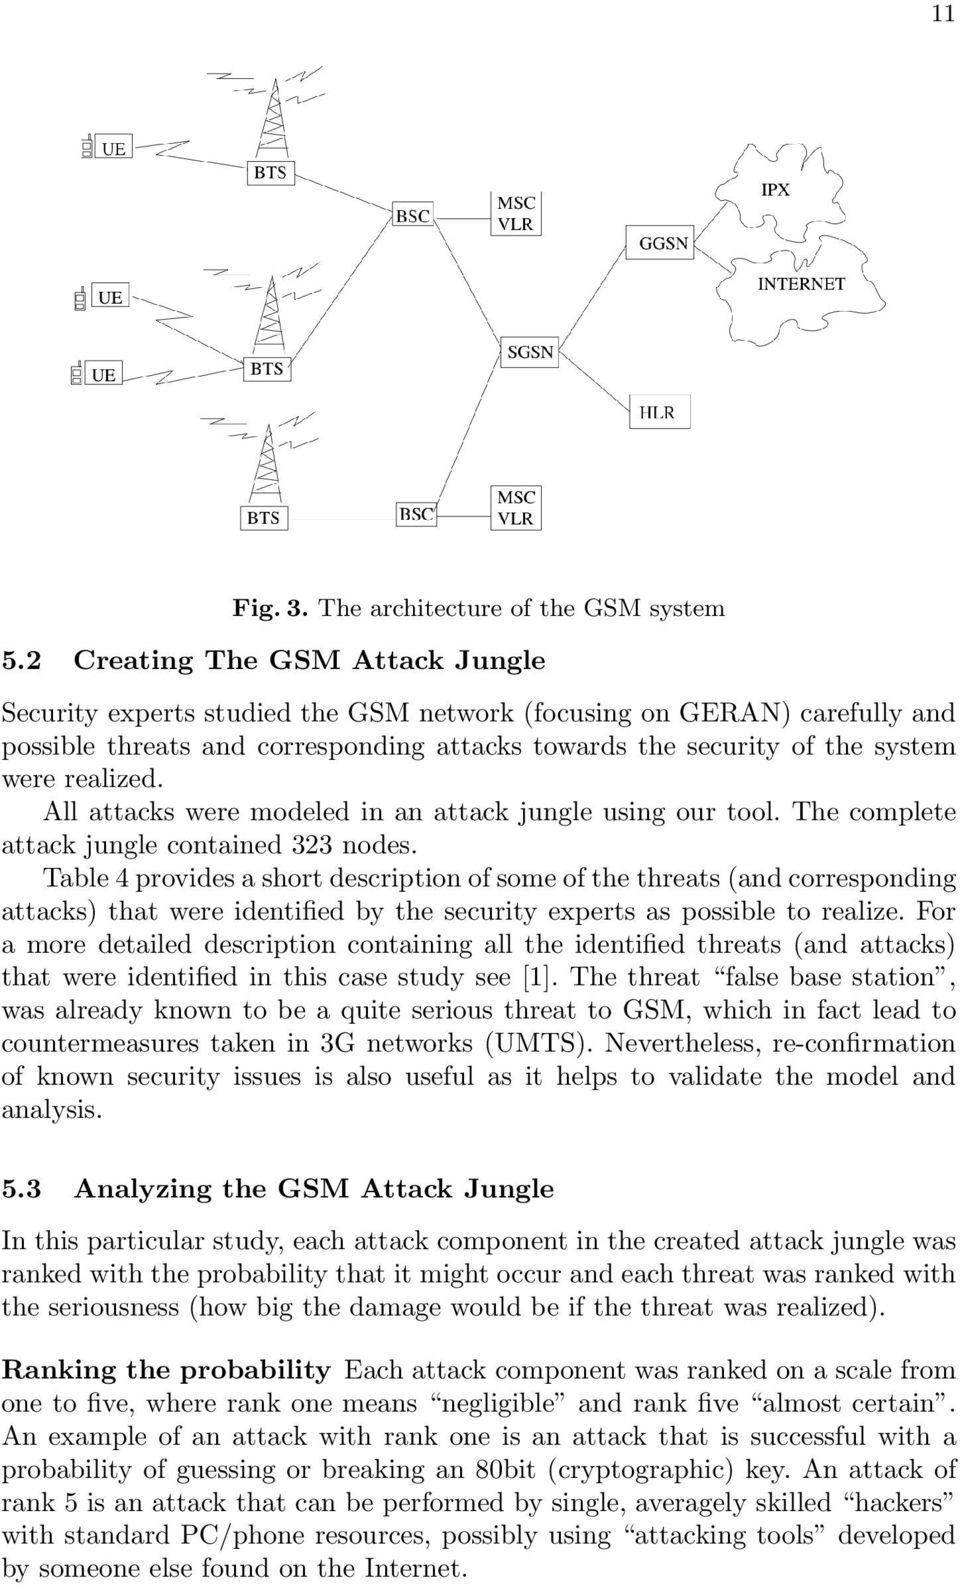 All attacks were modeled in an attack jungle using our tool. The complete attack jungle contained 323 nodes.